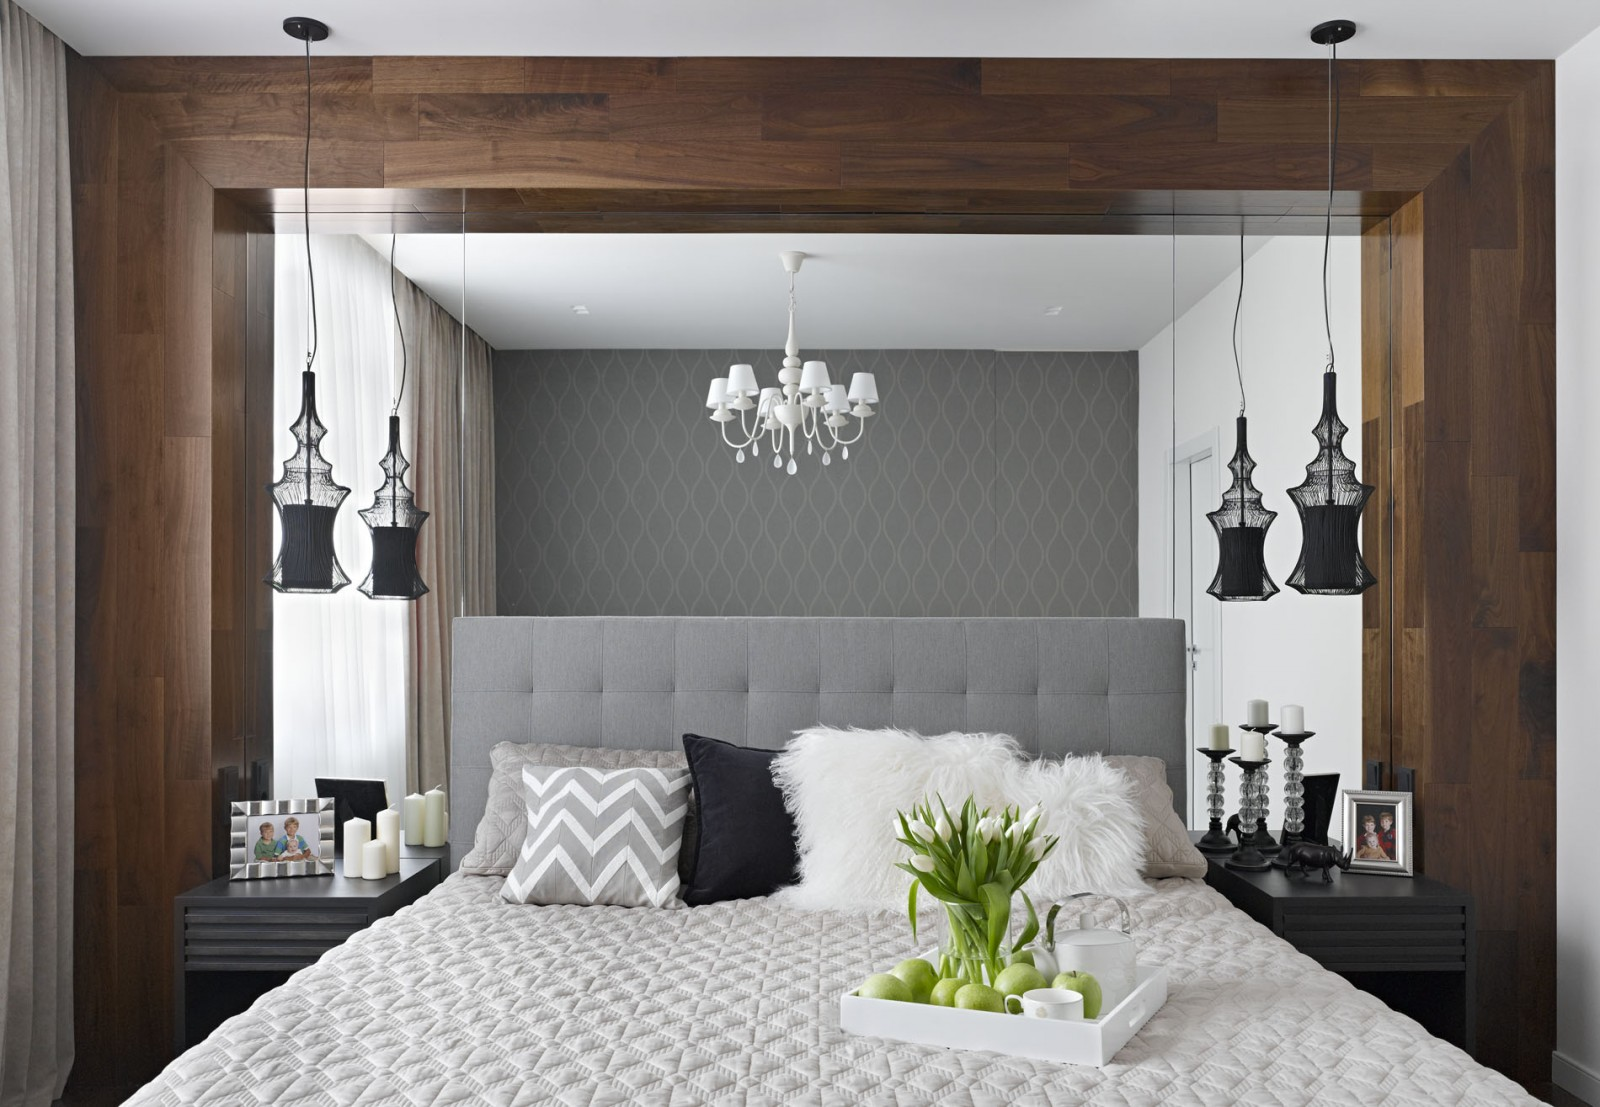 20 Small Bedroom Ideas That Will Leave You Speechless .